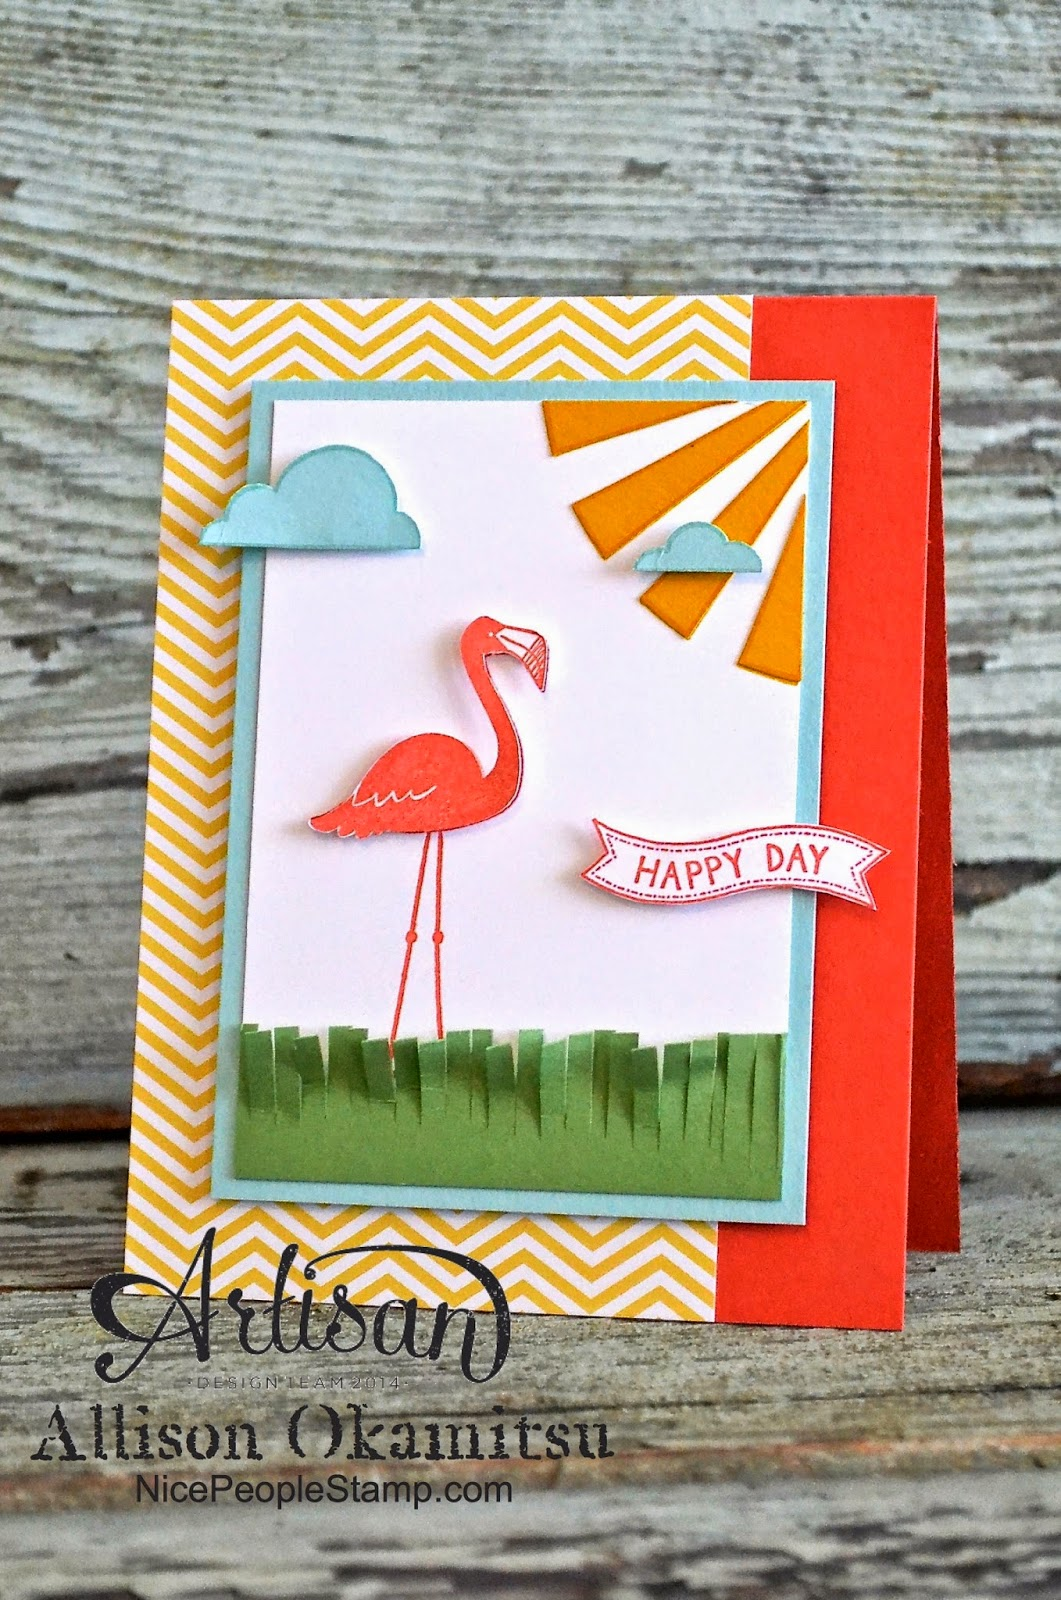 http://nicepeoplestamp.blogspot.com/2015/05/first-tgif-challenge-flamingo-lingo-so.html